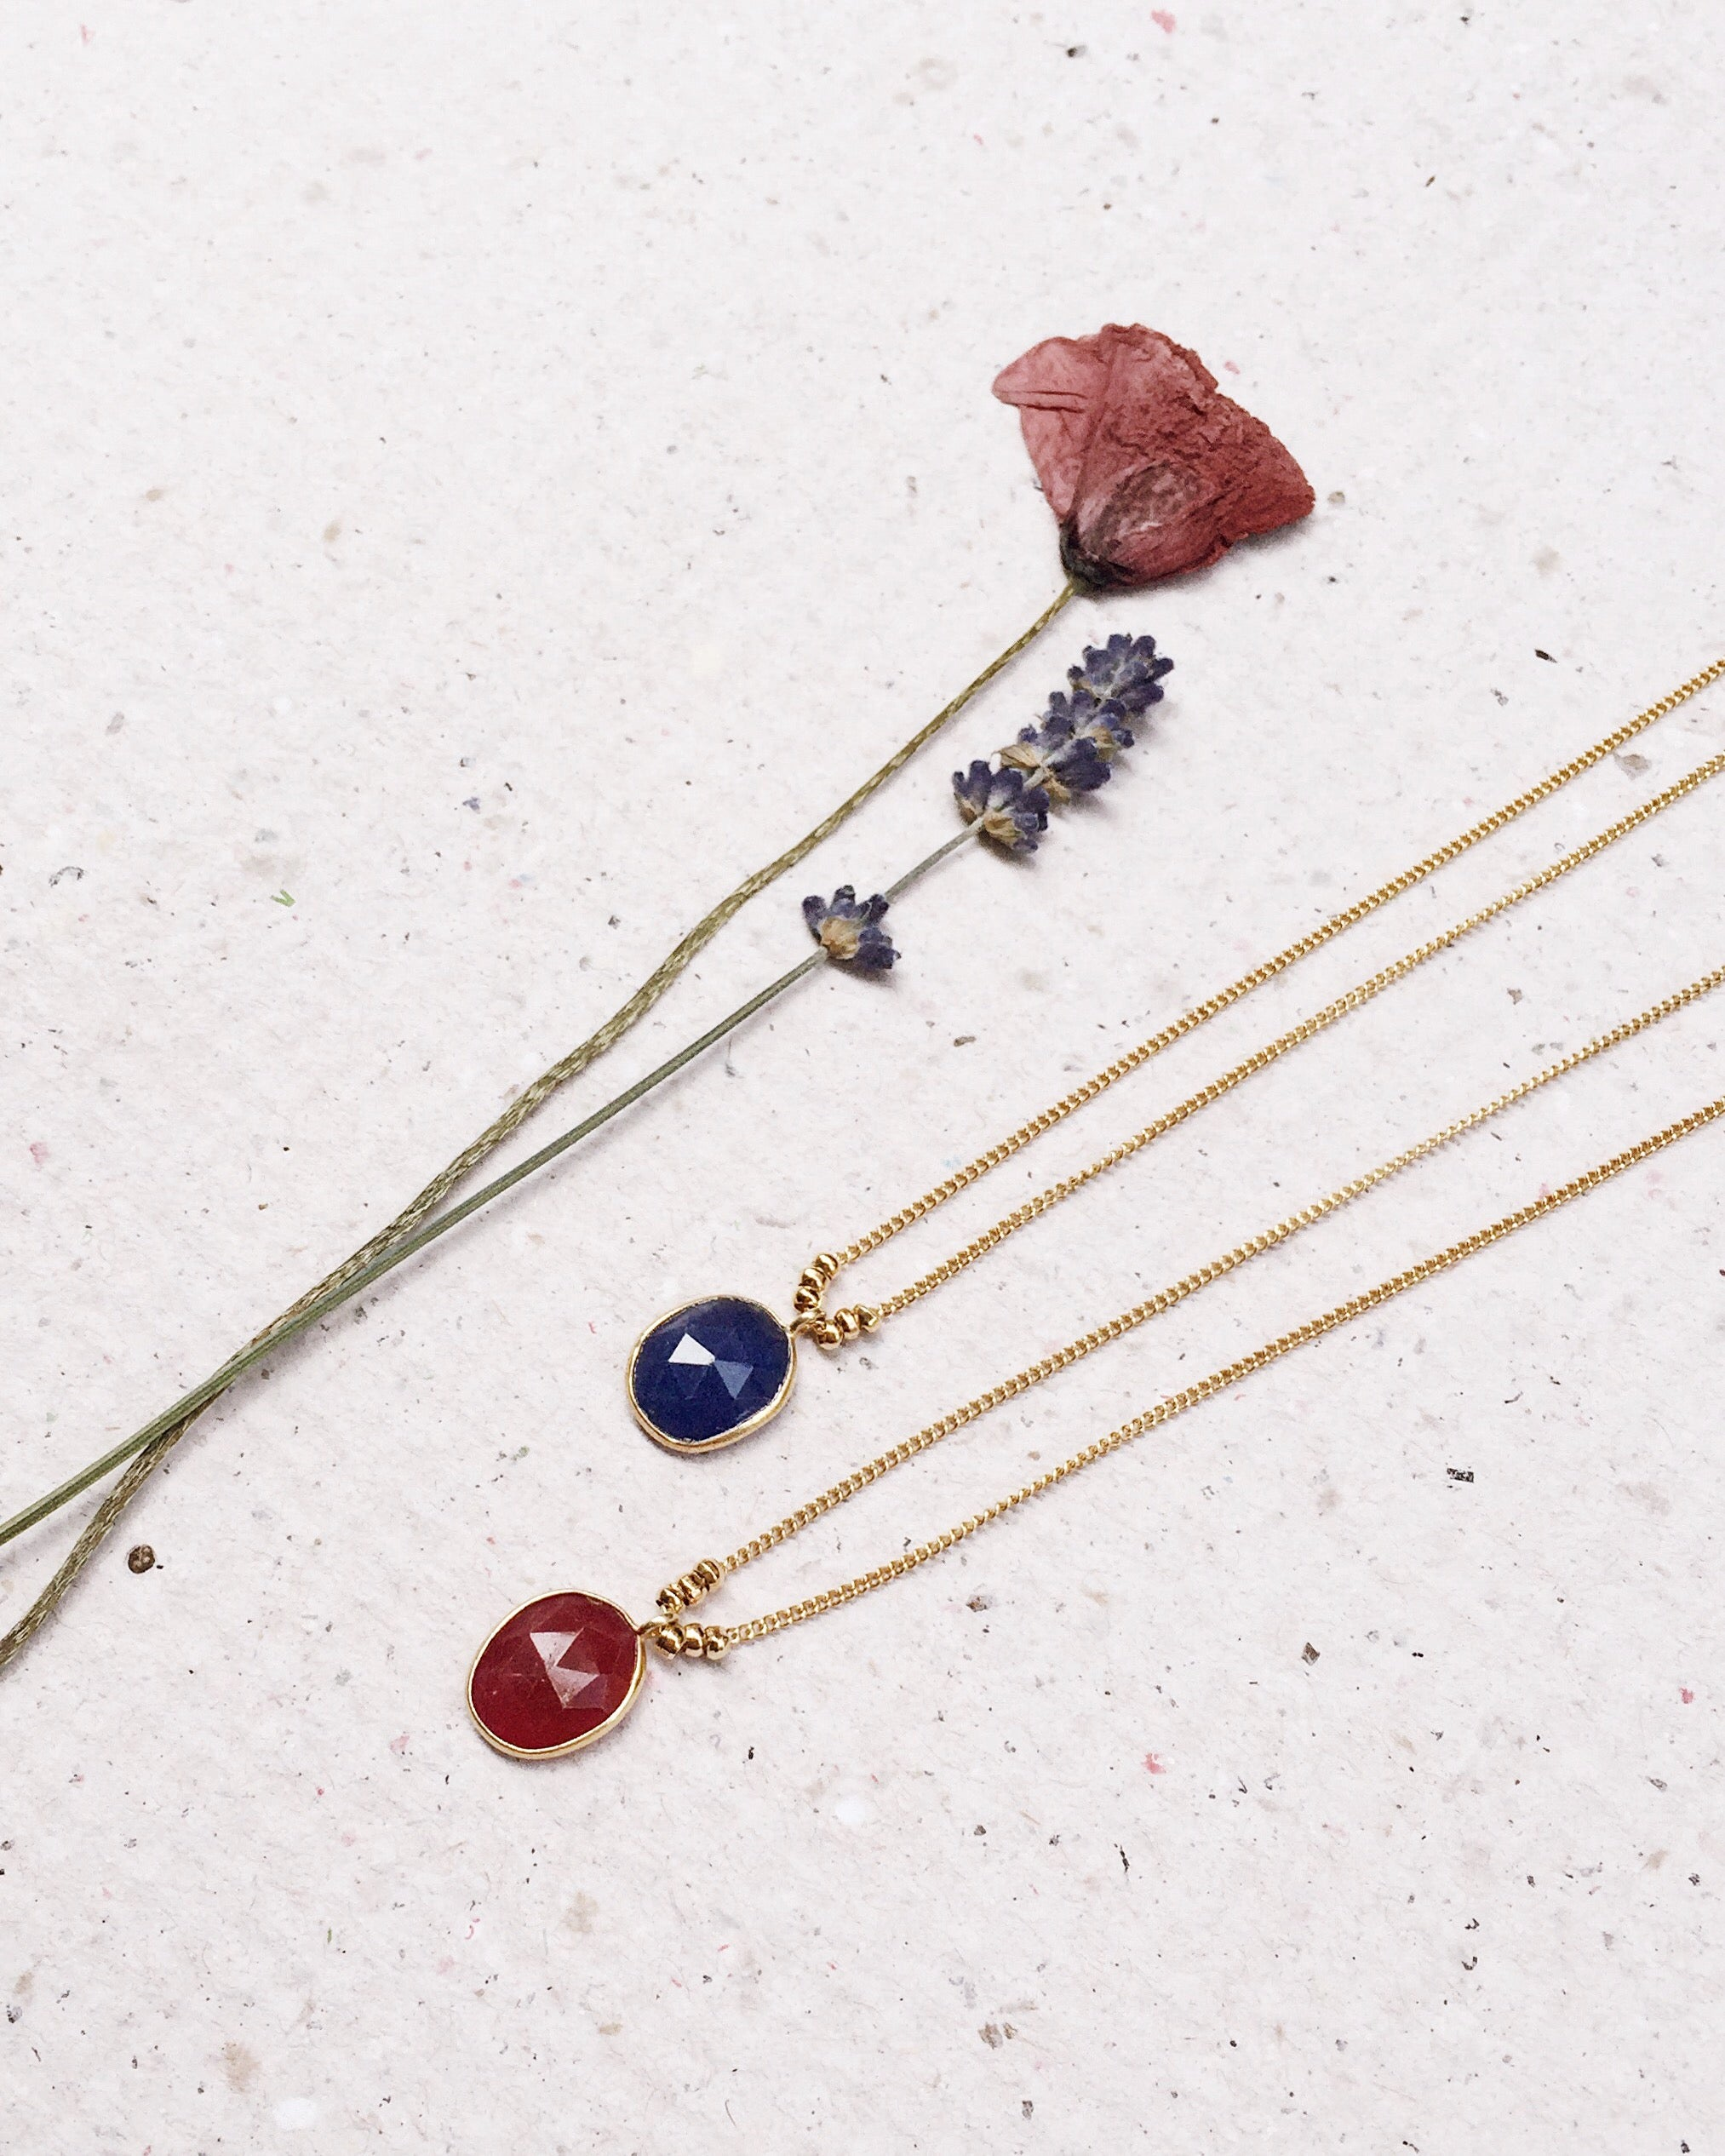 Stone & Beads Red Agate Necklace